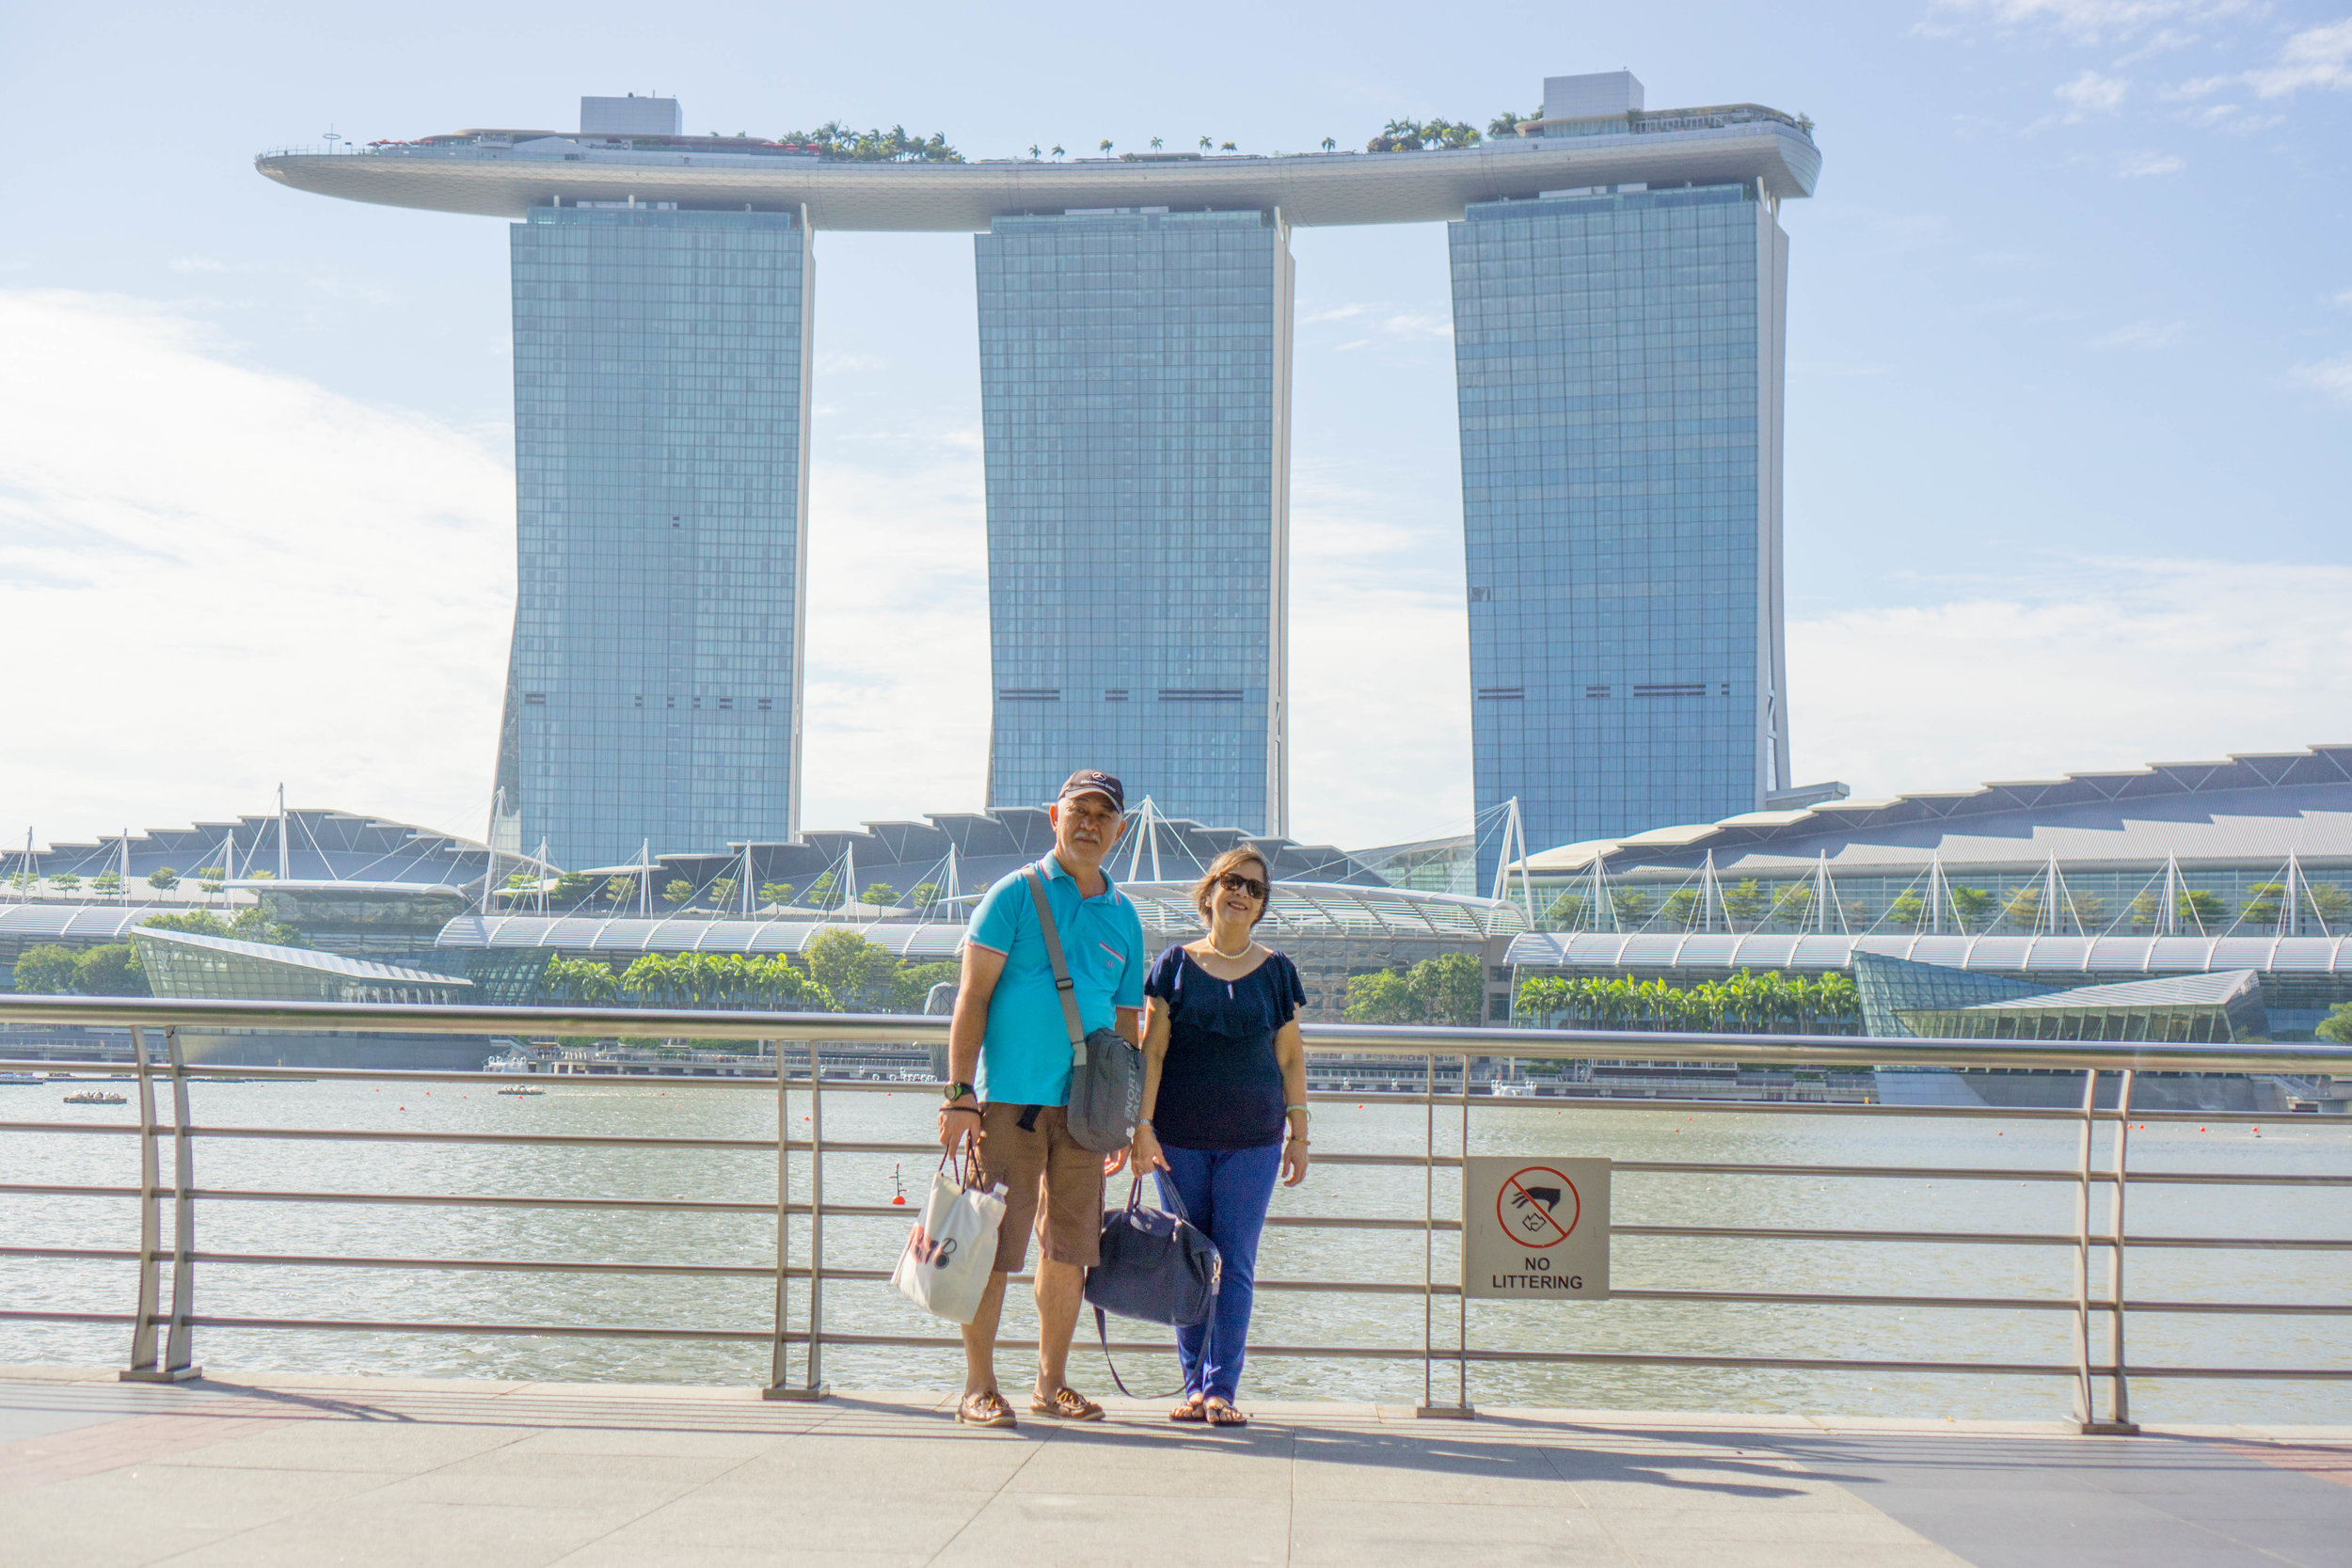 Poster shot by the Marina Bay Sands